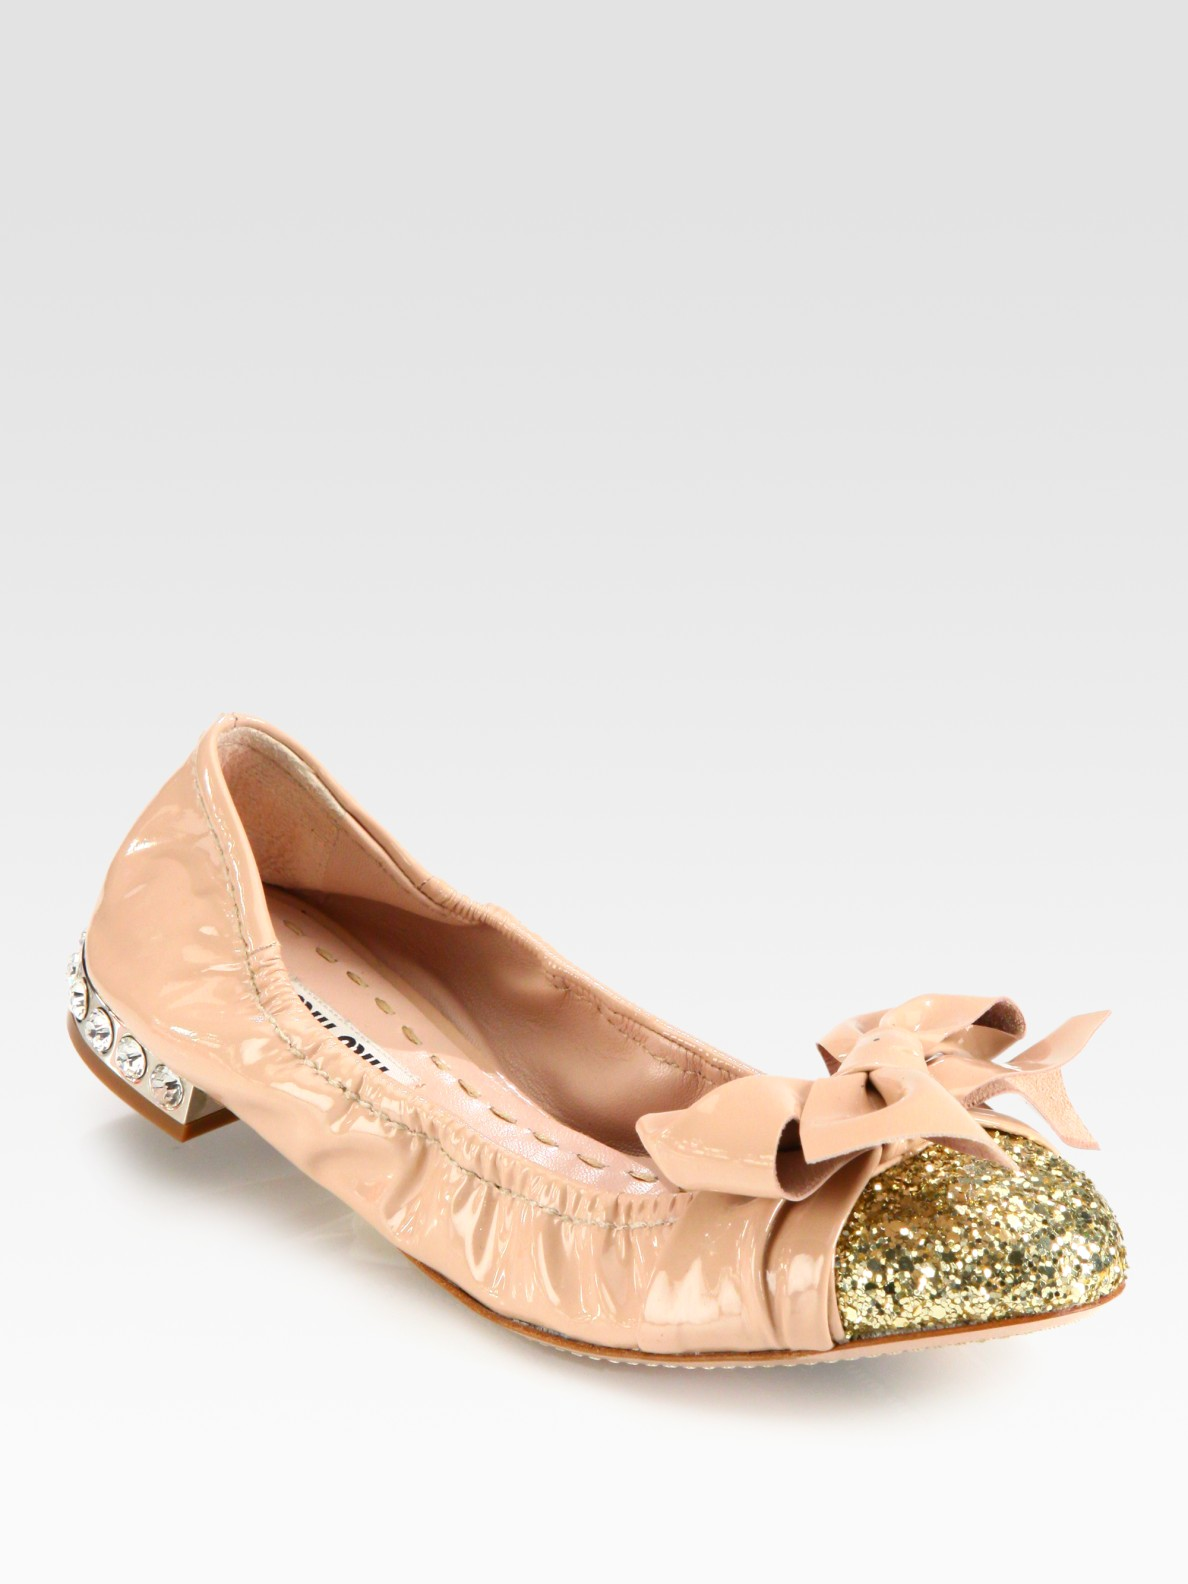 0a461563acdcc Miu Miu Glitter Patent Leather Bow Ballet Flats in Natural - Lyst